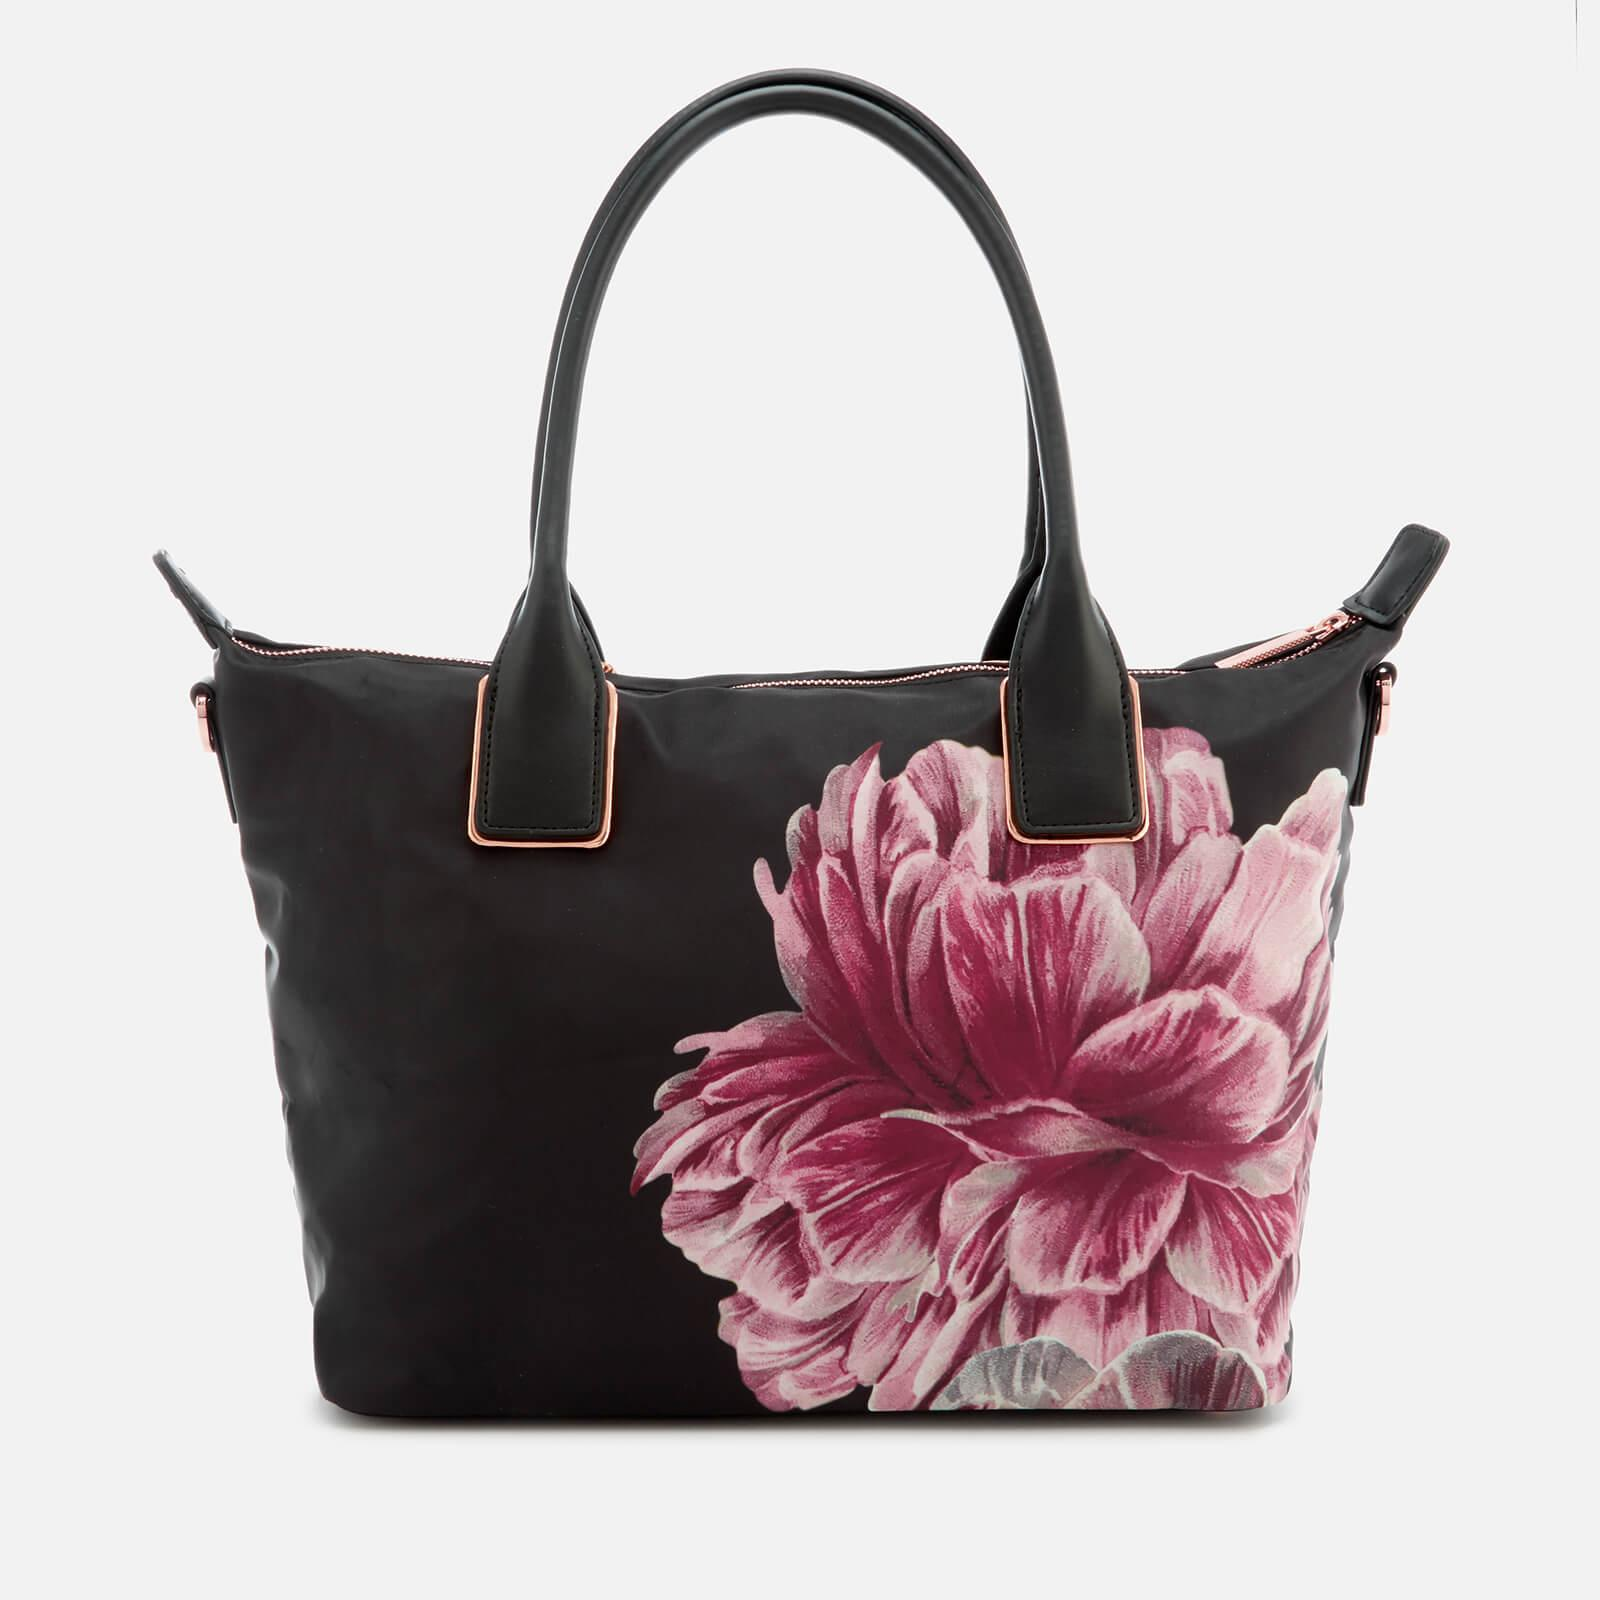 9bf6d2d00c1881 Ted baker llisa tranquility small nylon tote bag lyst jpg 1600x1600 Tote bag  tranquility floral